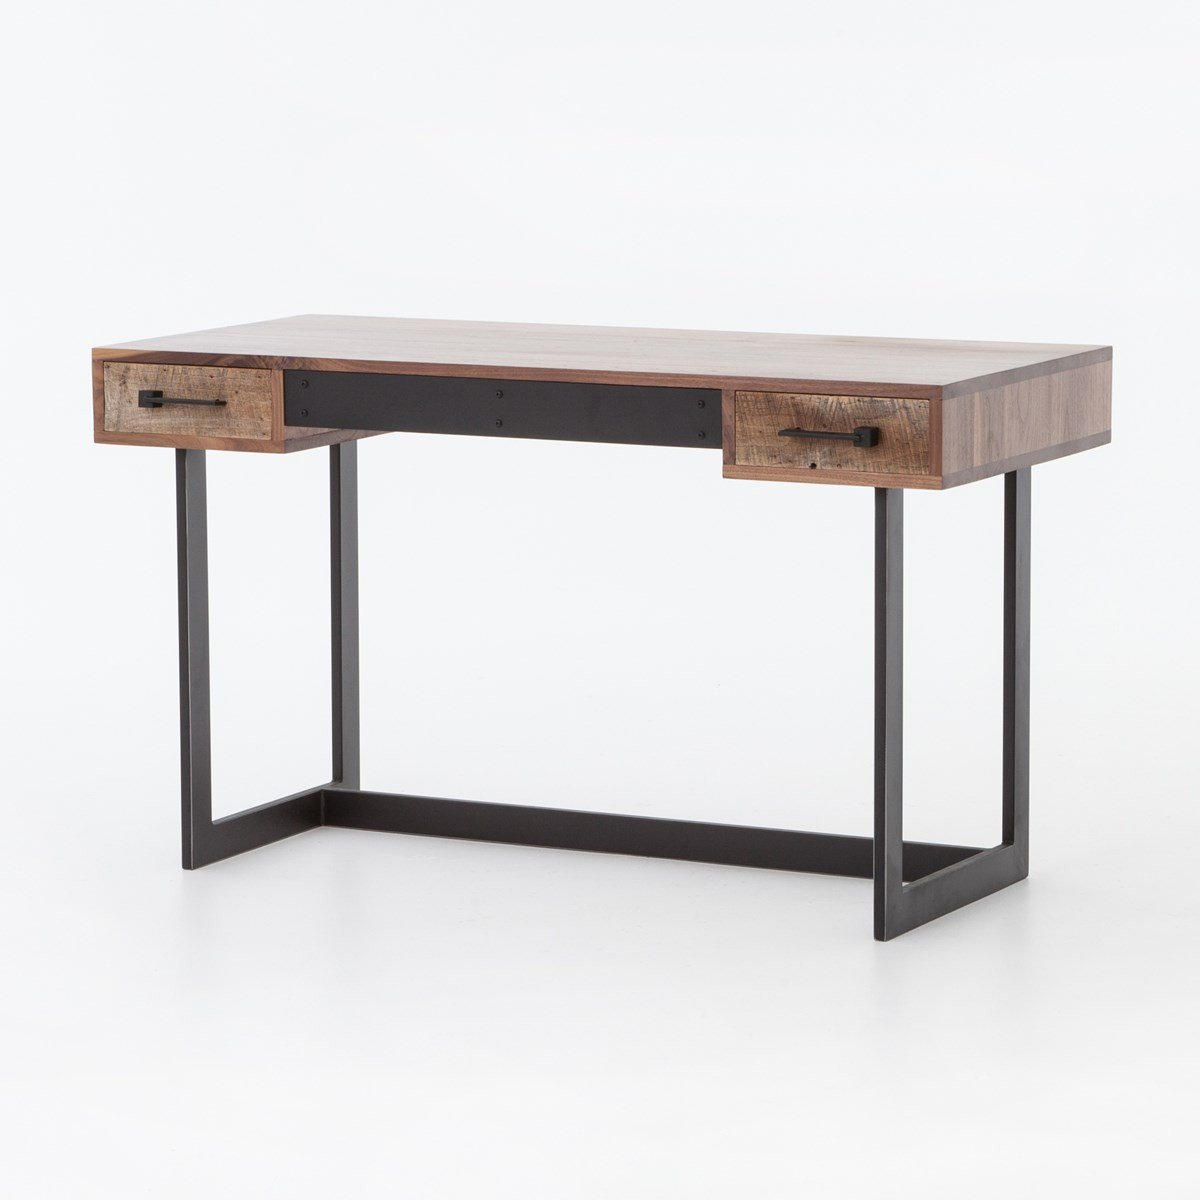 Anderson industrial rustic oak wood and metal writing desk for Metal desk with wood top